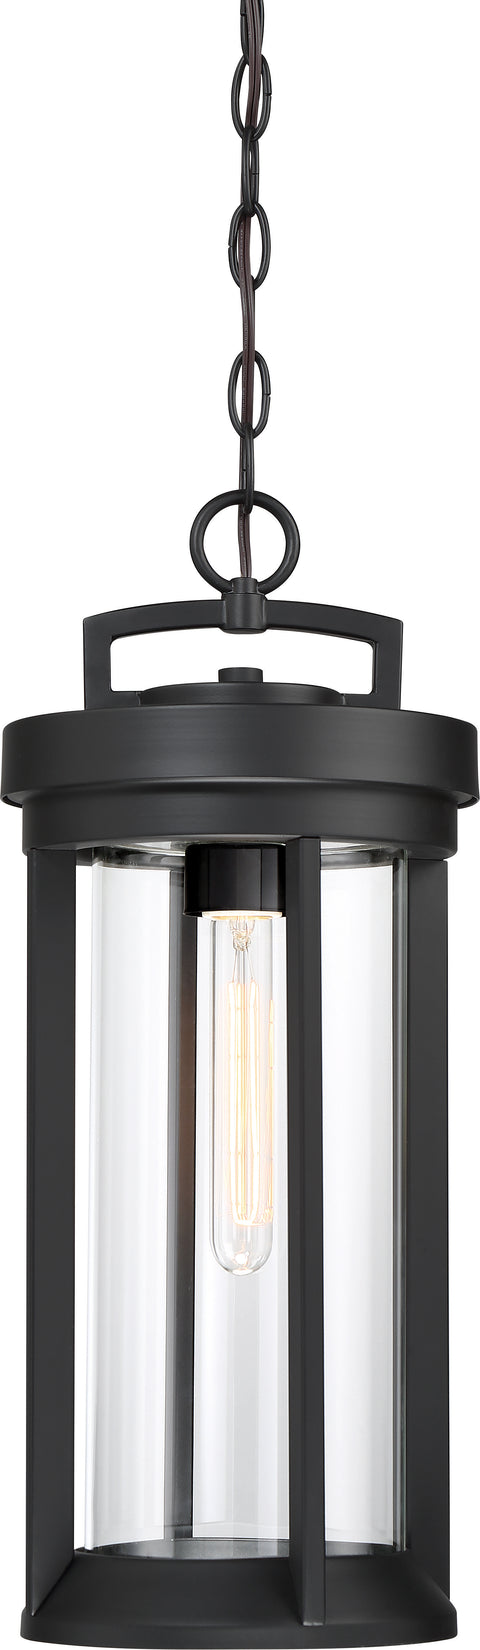 Nuvo Lighting 60/6504 Huron 1 Light Hanging Lantern Aged Bronze Finish with Clear Glass